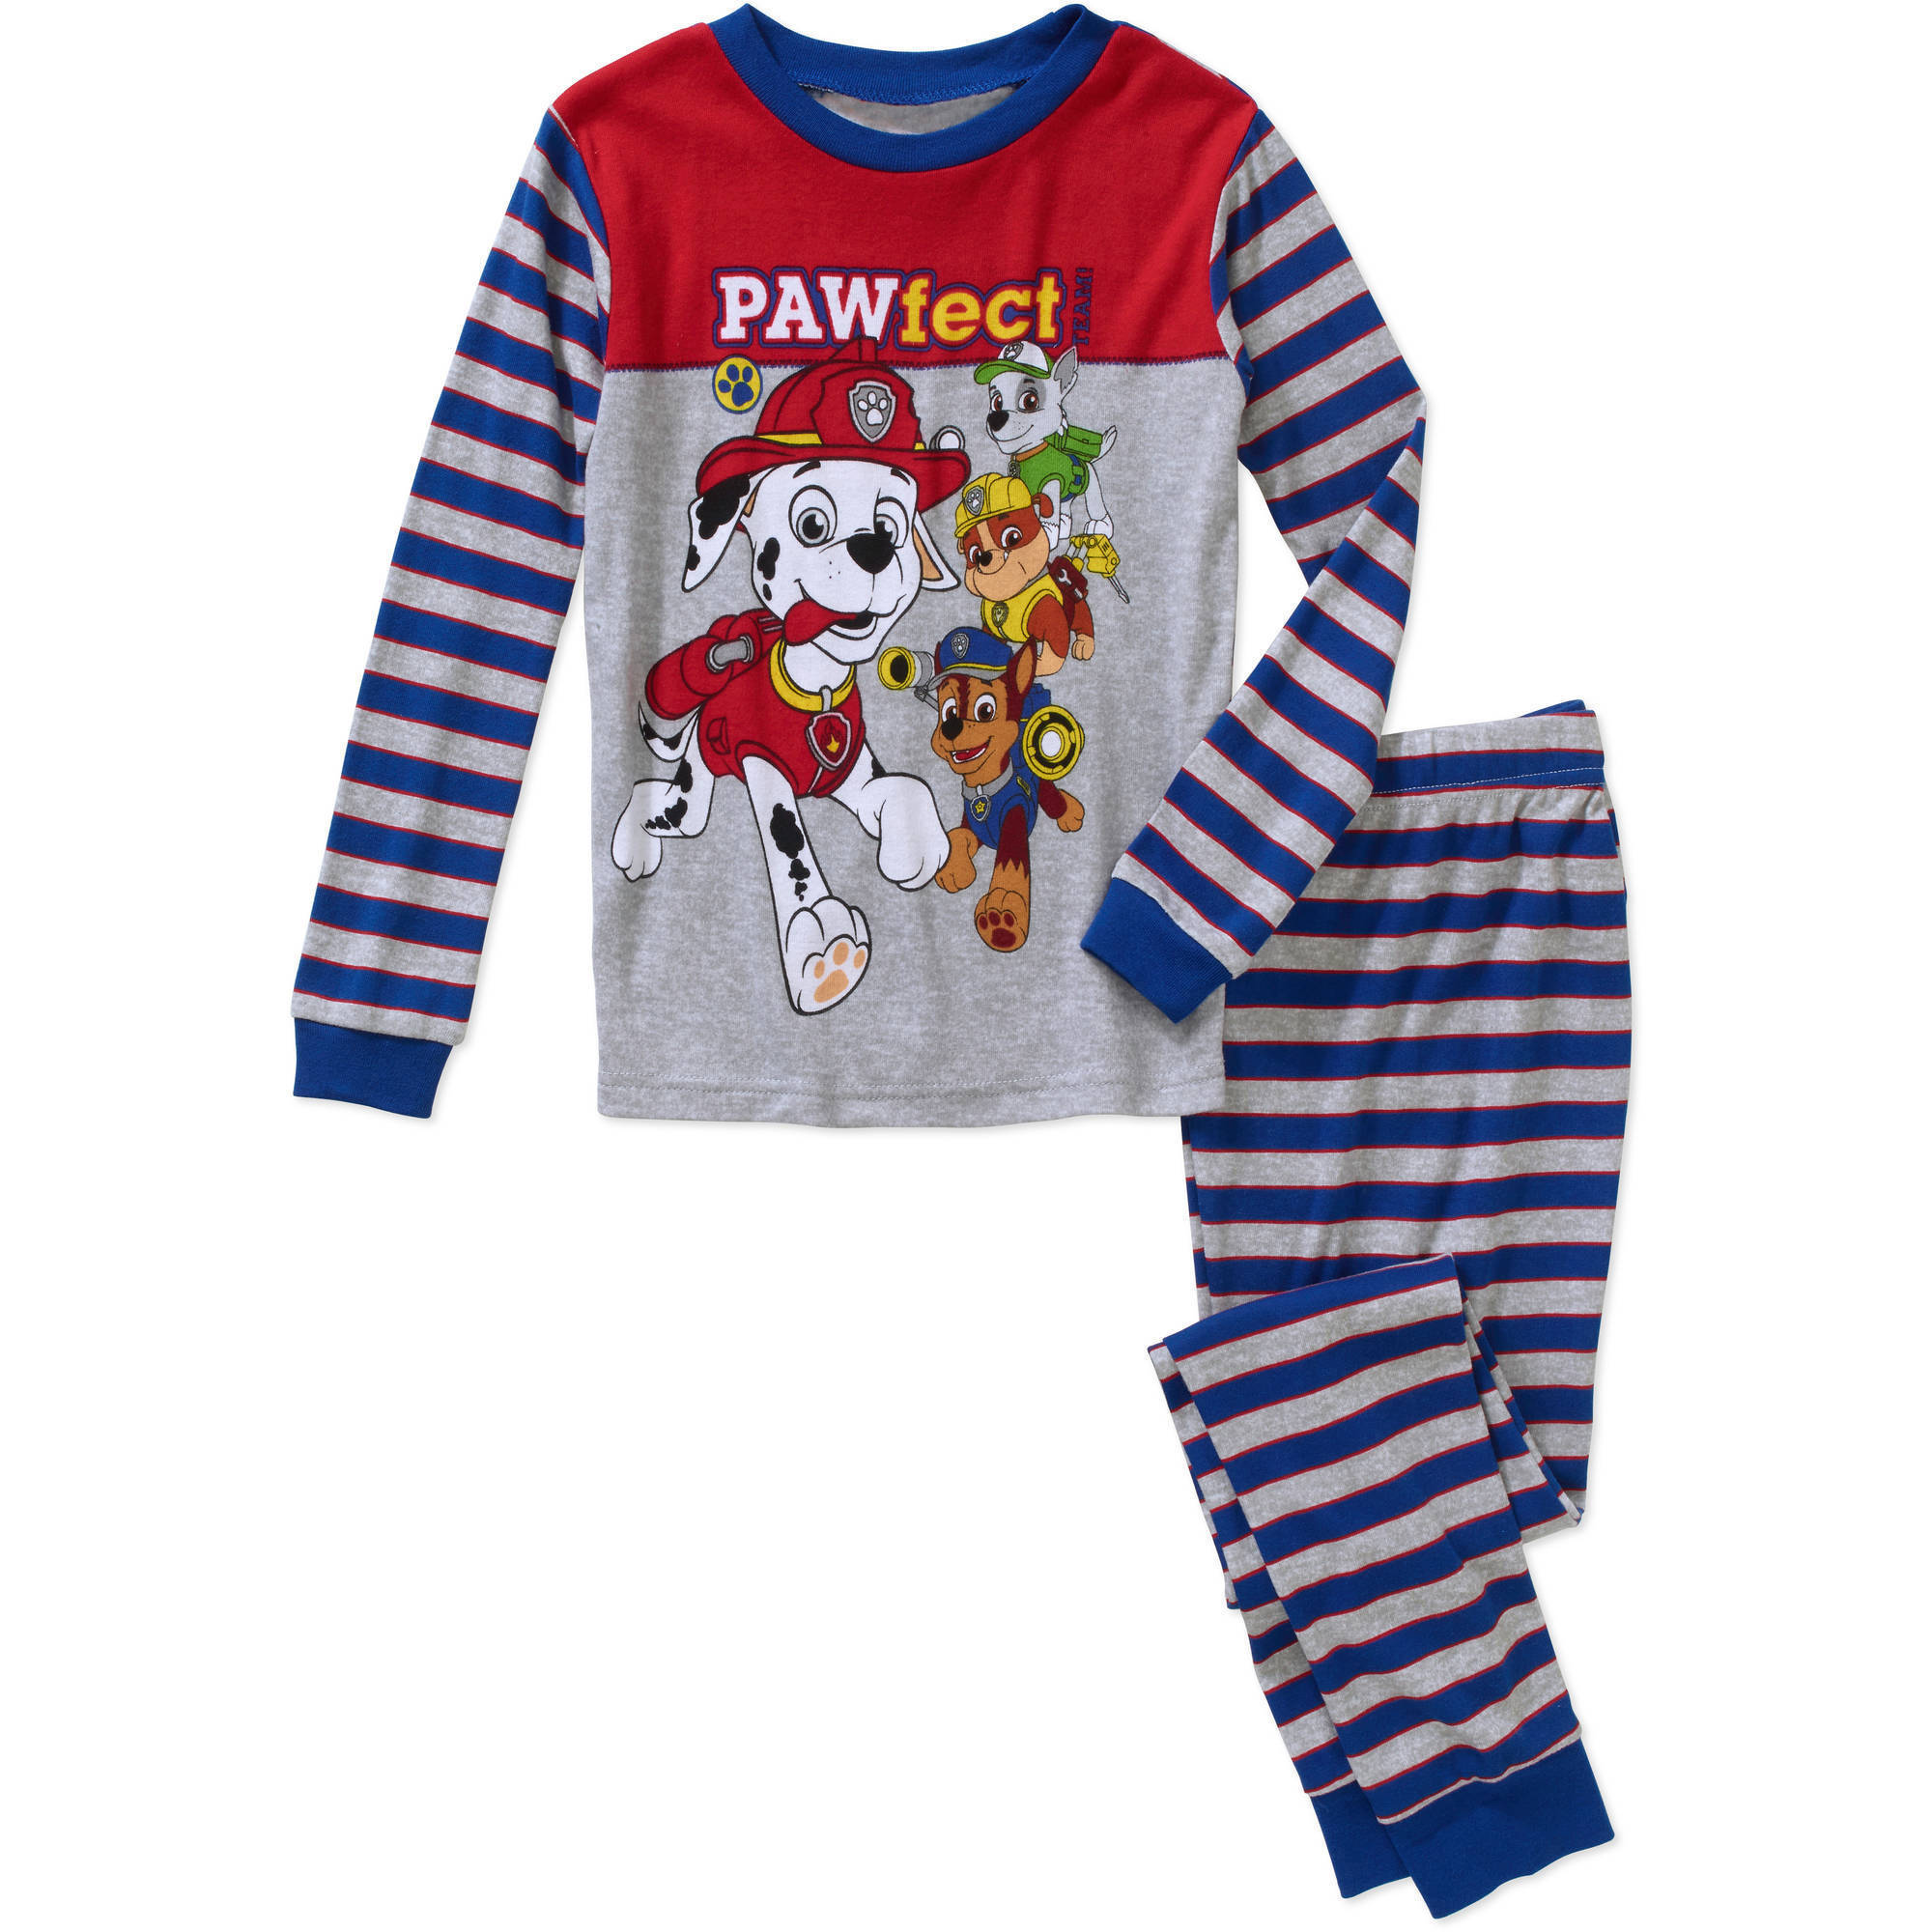 Paw Patrol Boys' Licensed 2 Piece Cotton Pajama Sleepwear Set, Available in 4 Characters